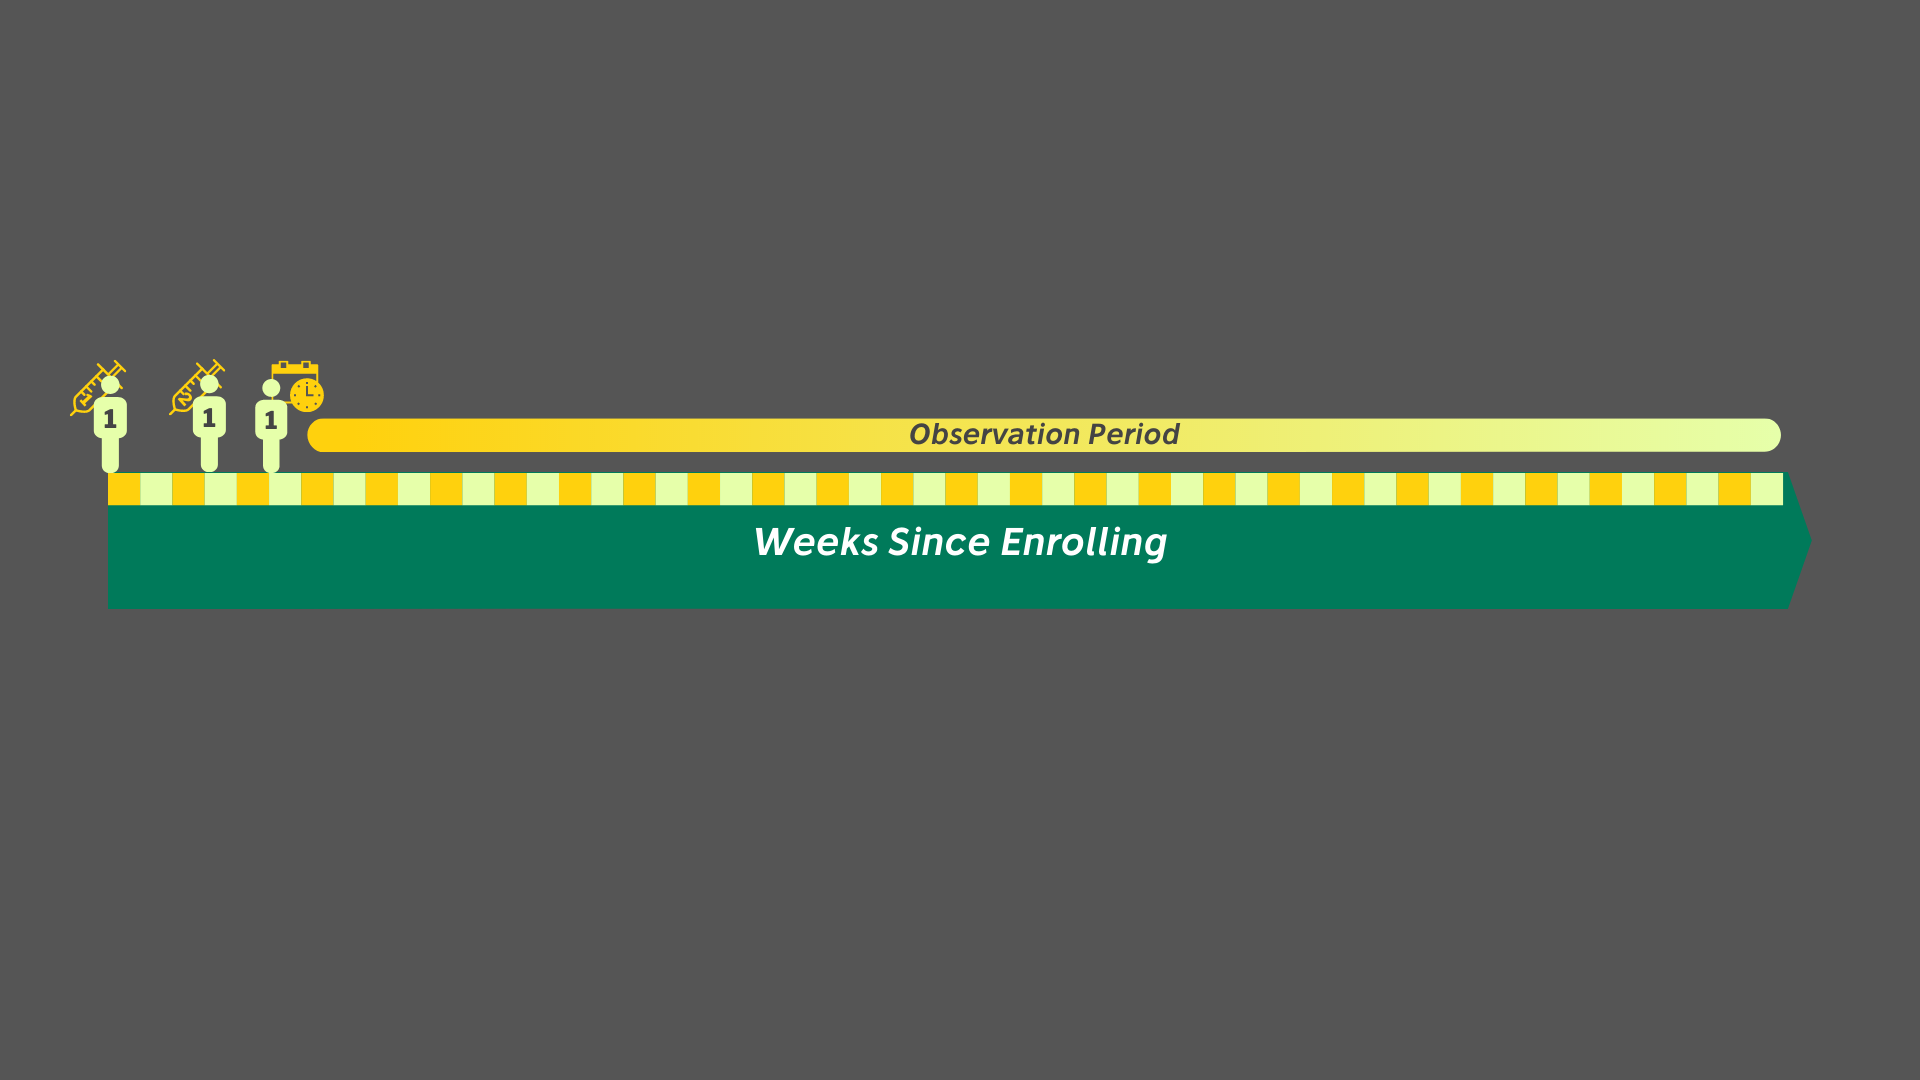 Vaccine Phase 3 Trial Timeline